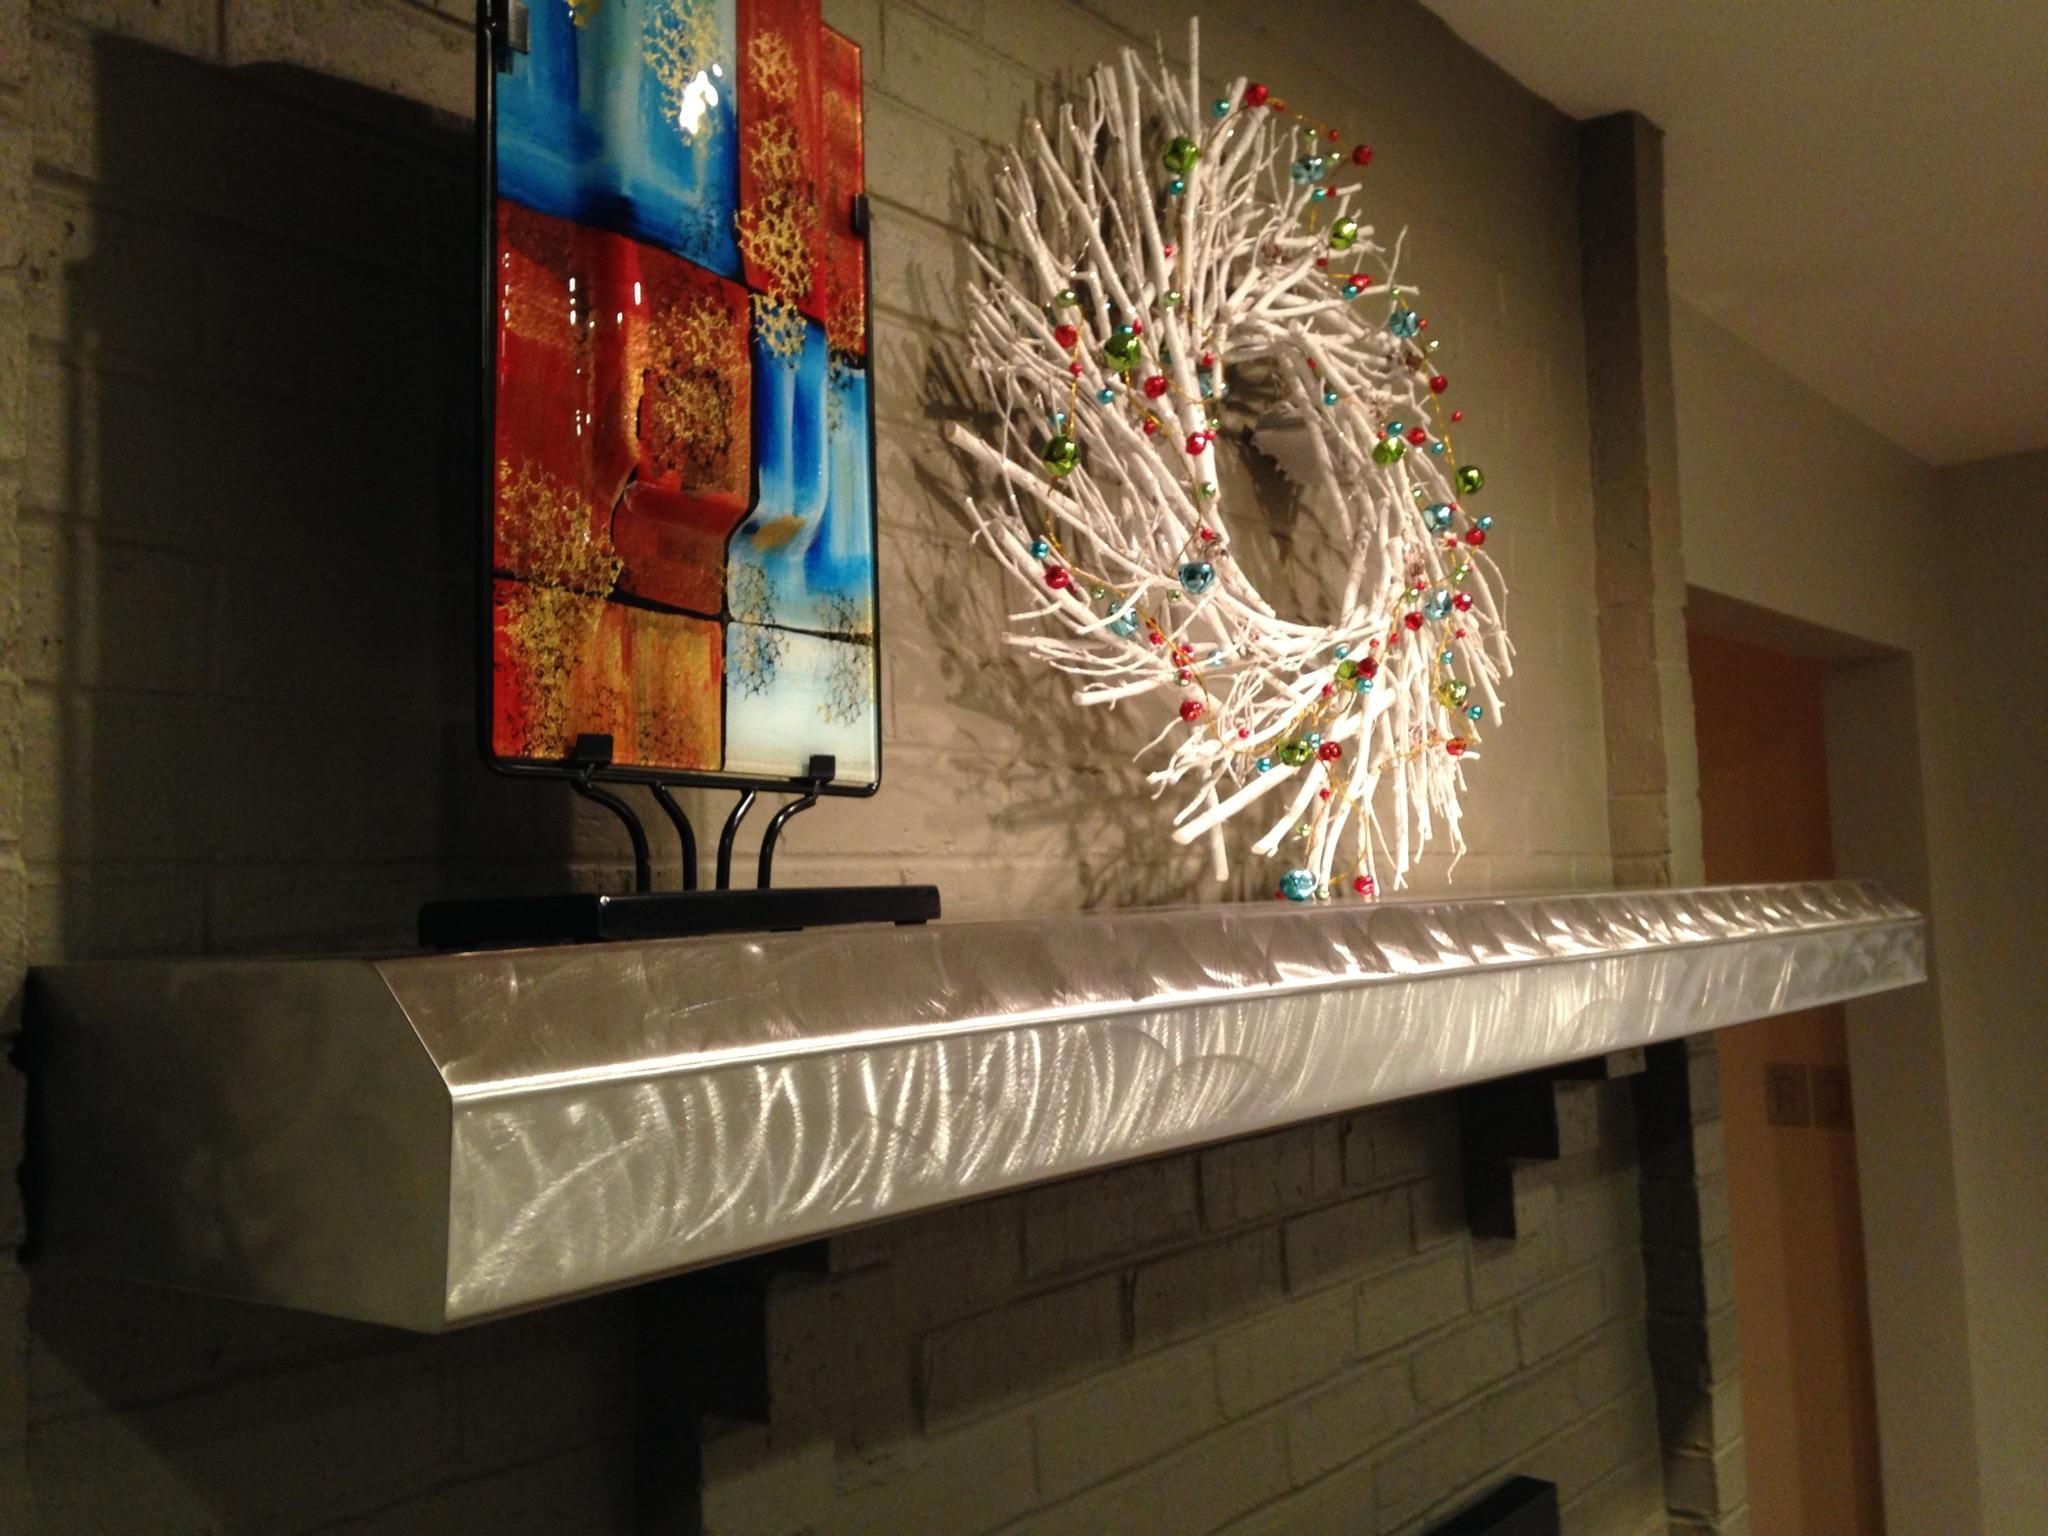 Buy Hand Made Stainless Fireplace Mantels And Floating Shelves Made To Order From James Perkins